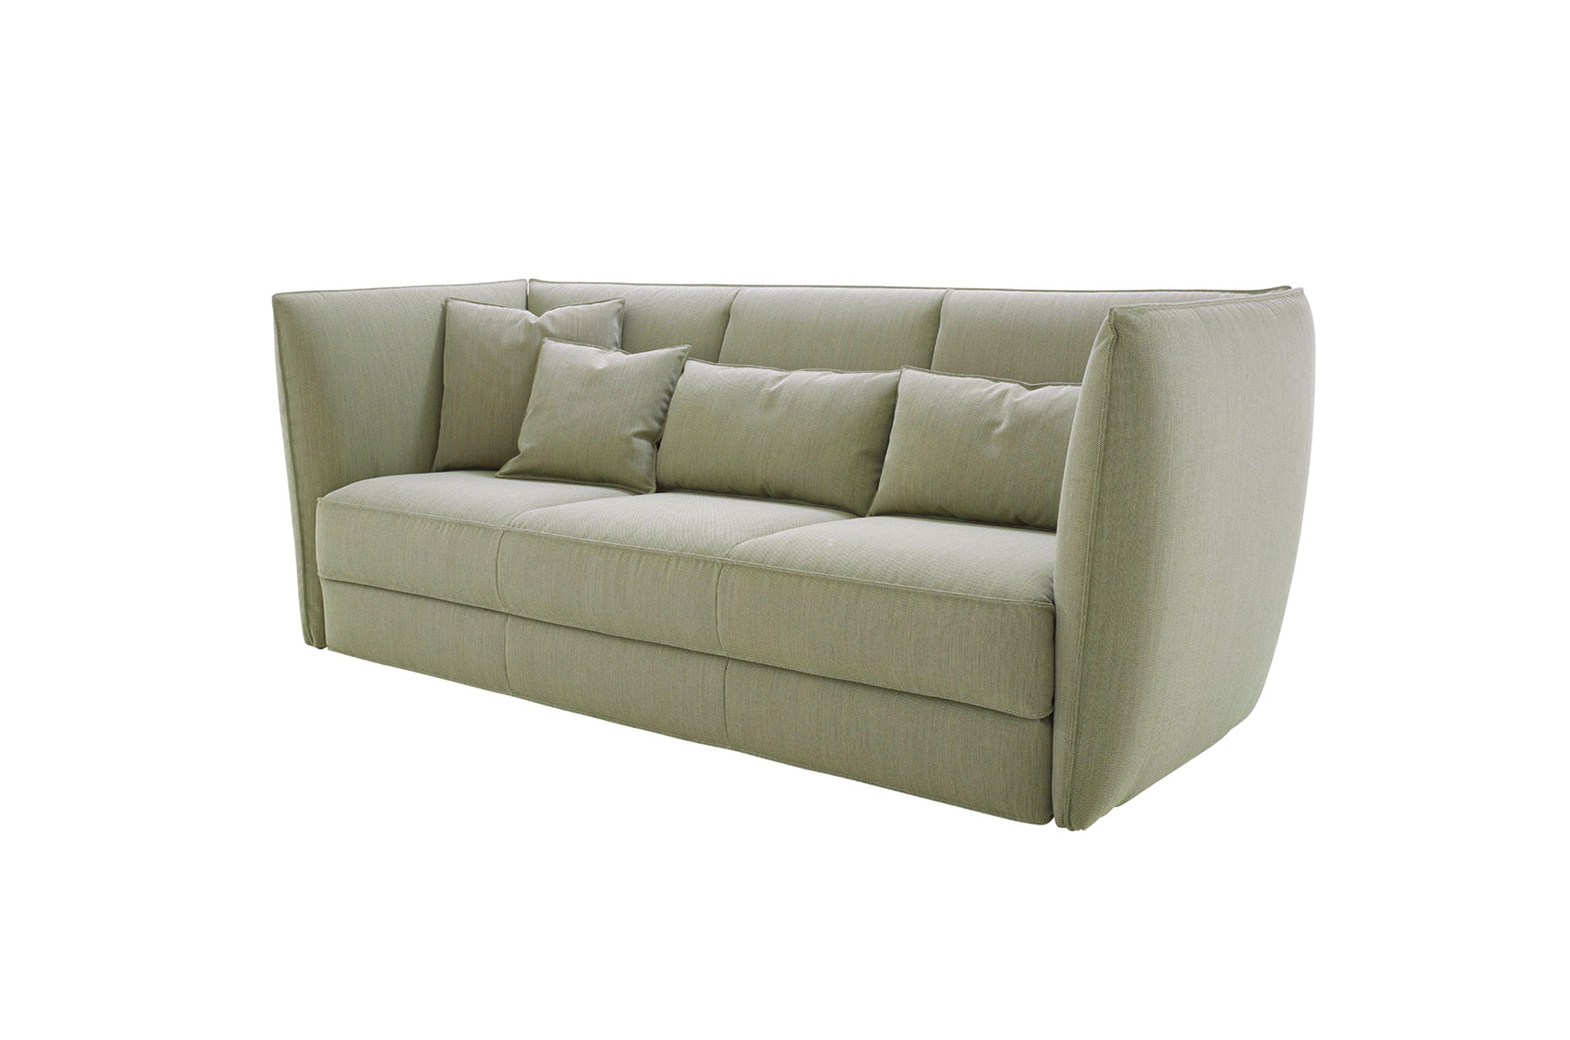 nick-rennie-softly-sofa-3-04bb